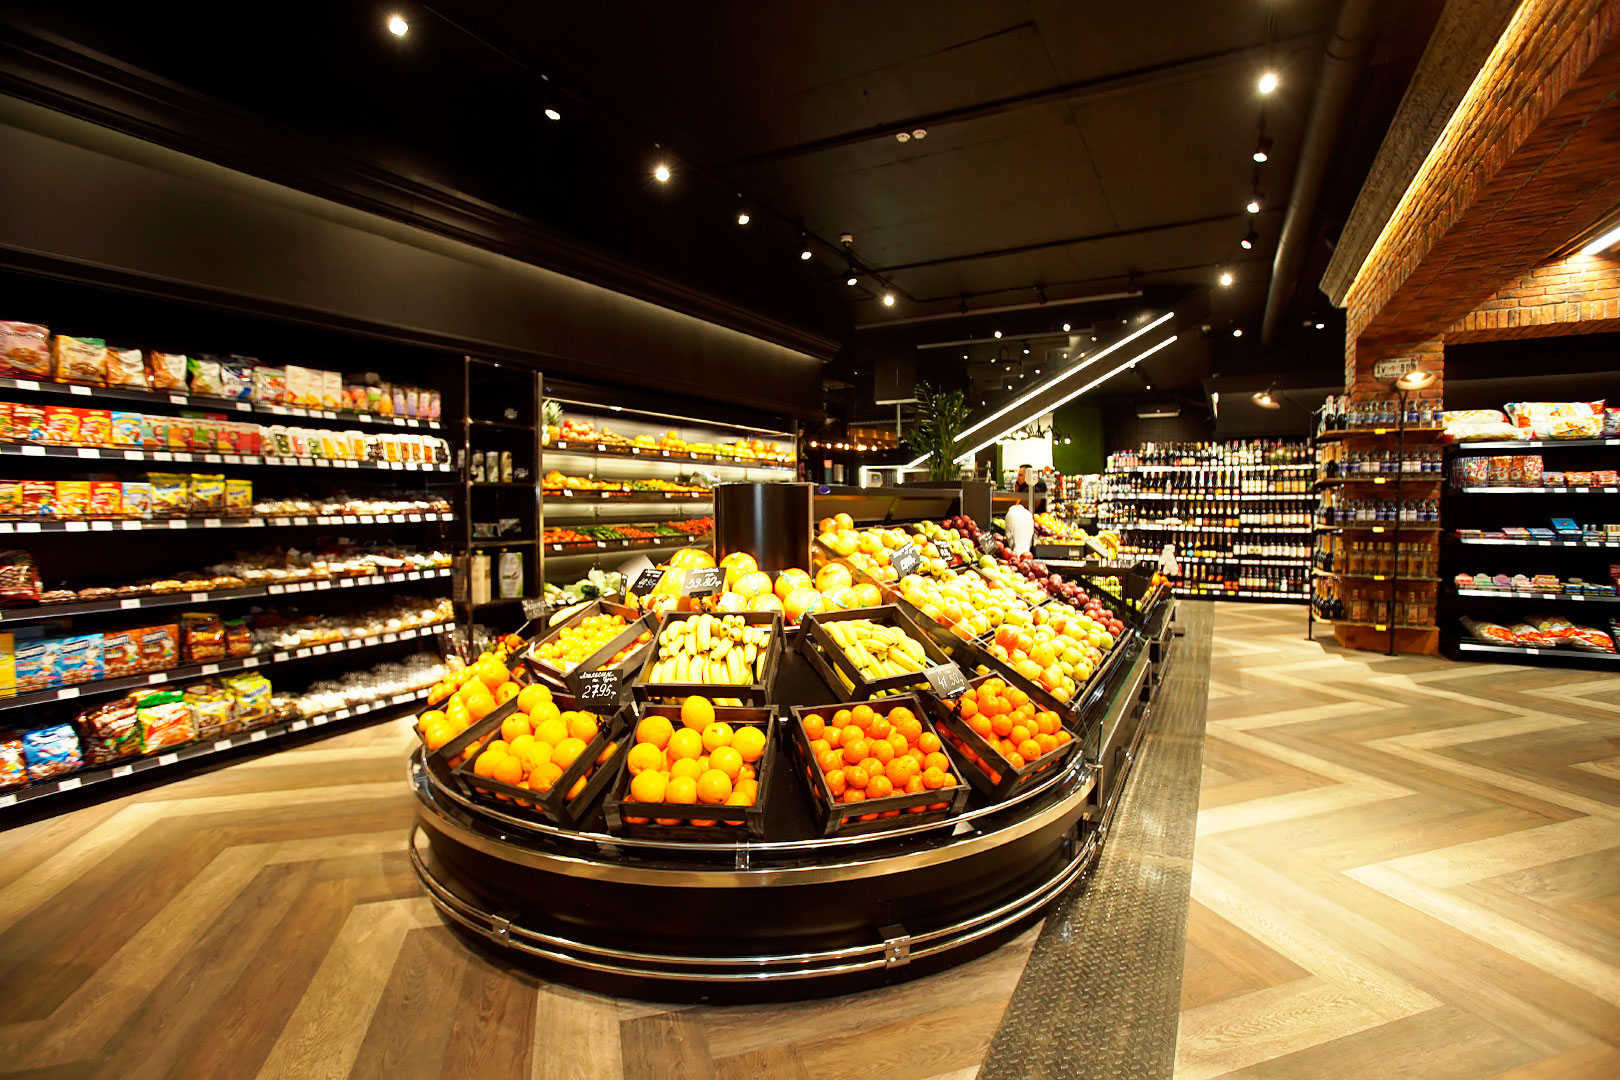 """Specialized units for vegetables and fruit sales Indiana VF MC 130 VF self M im Supermarkt """"Delikate"""""""